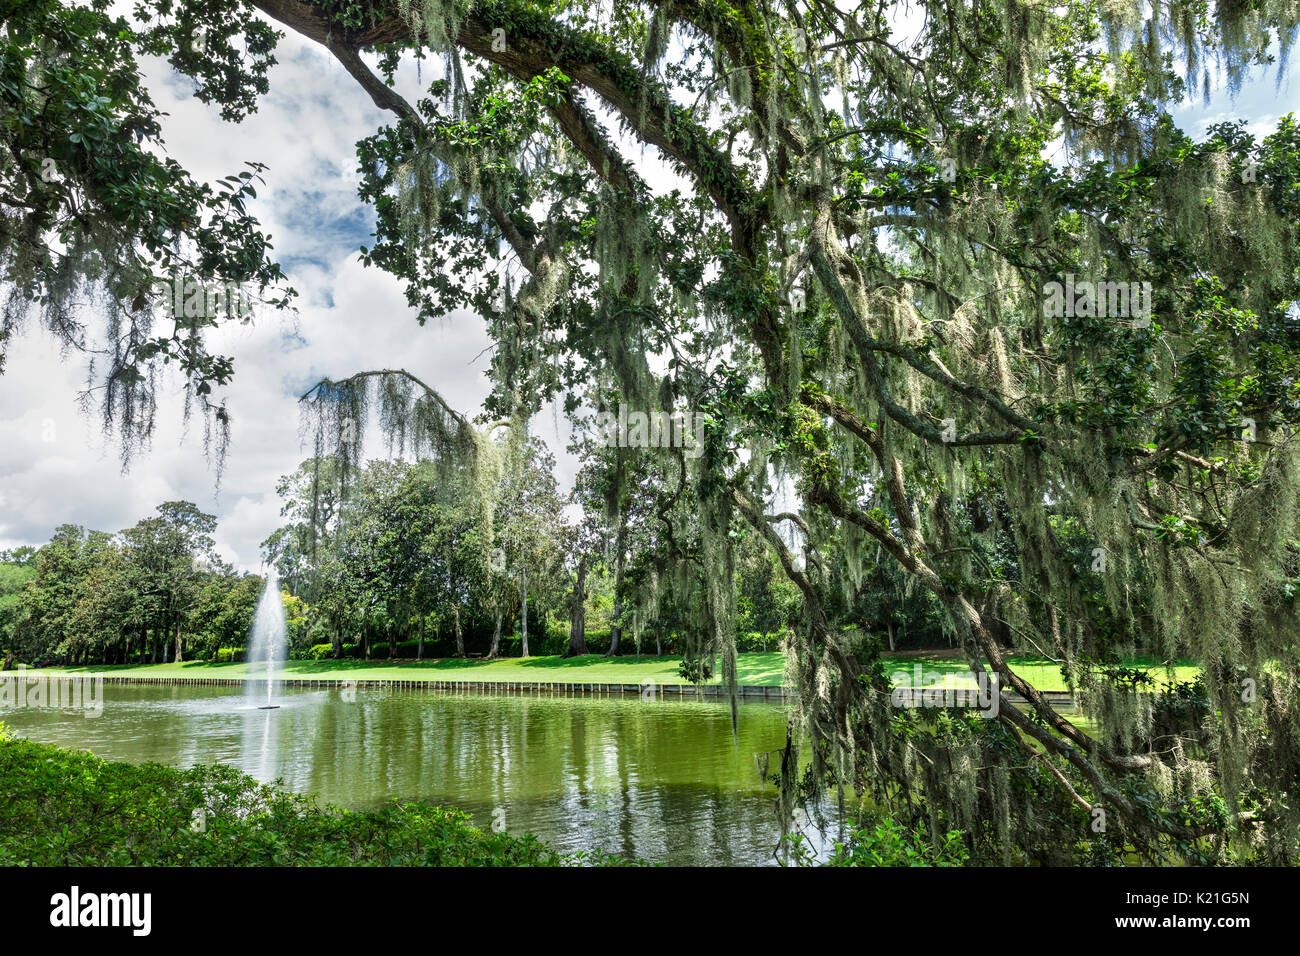 A View Of The Gardens At Middleton Place Plantation In Charleston, South  Carolina, USA